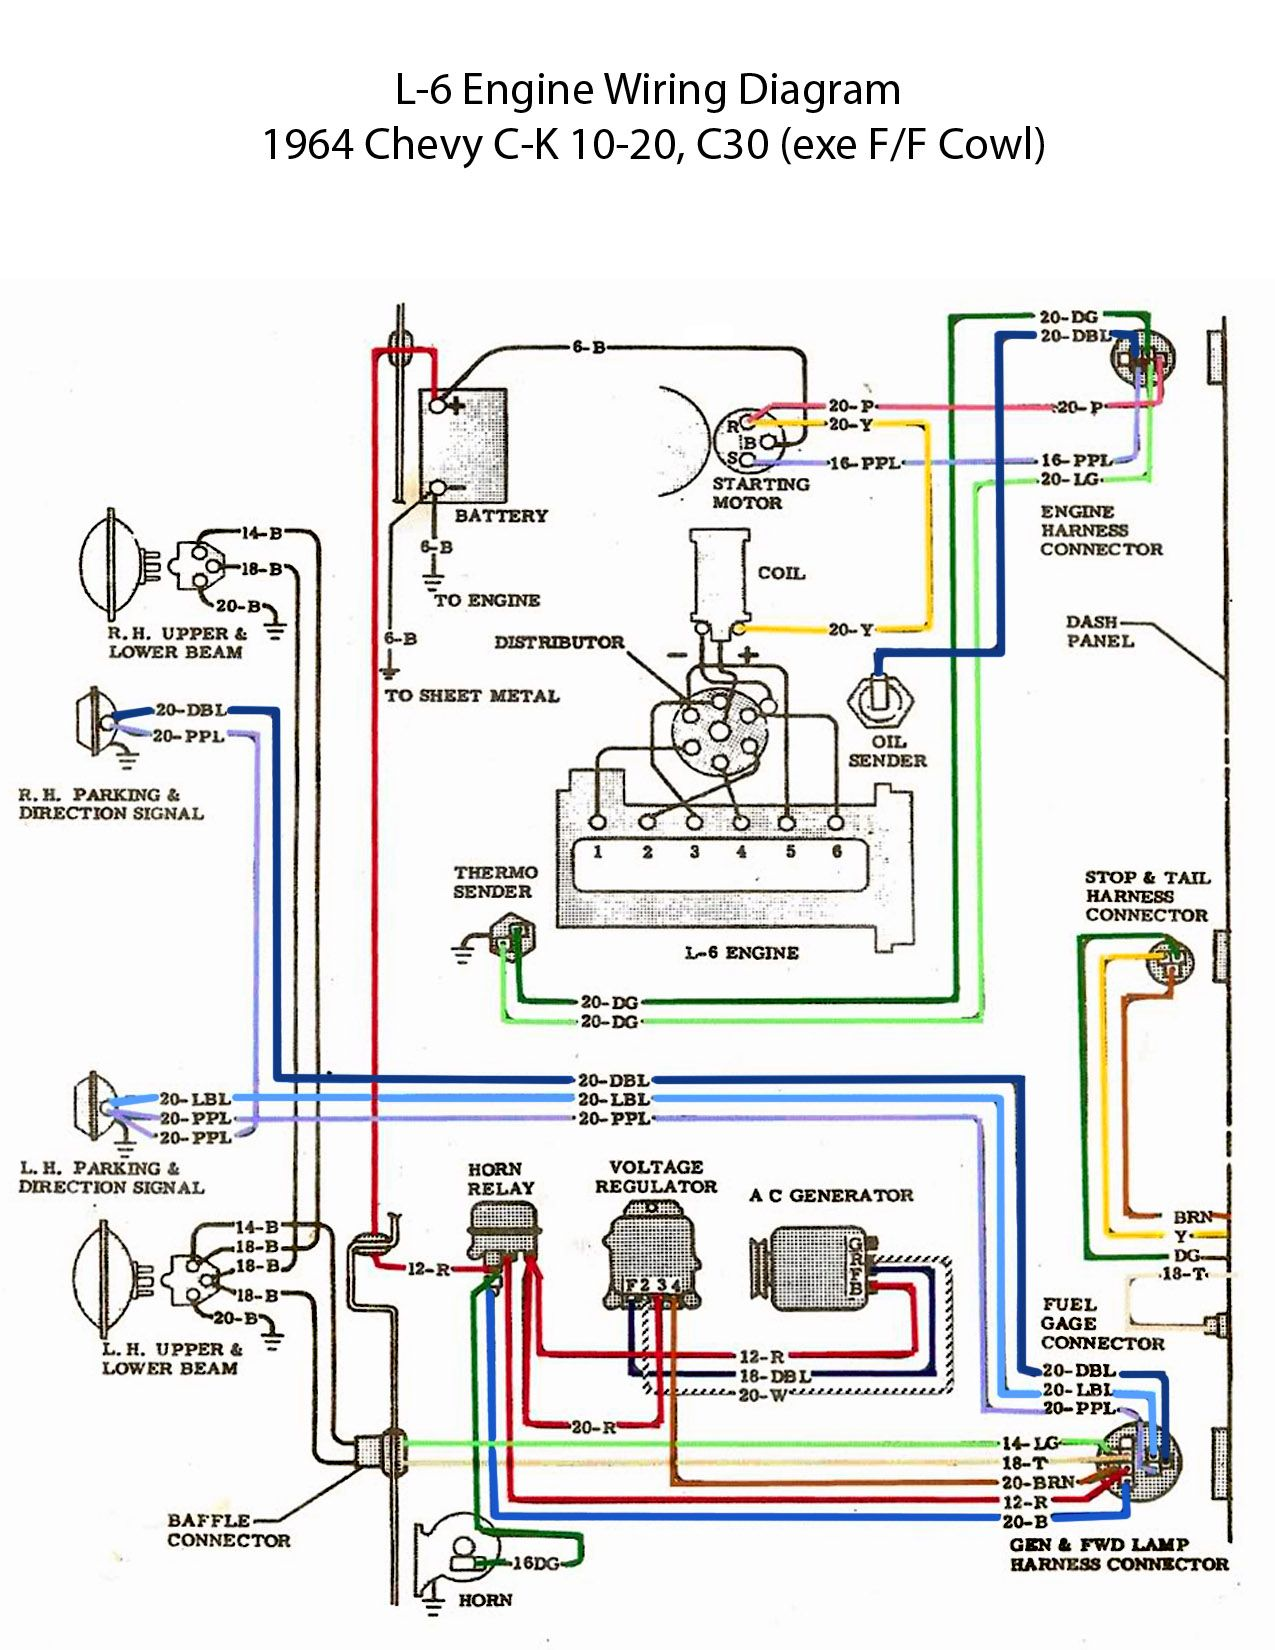 electric l 6 engine wiring diagram 60s chevy c10 wiring rh pinterest com  chevy 5.3 engine wiring diagram chevy 5.3 engine wiring diagram